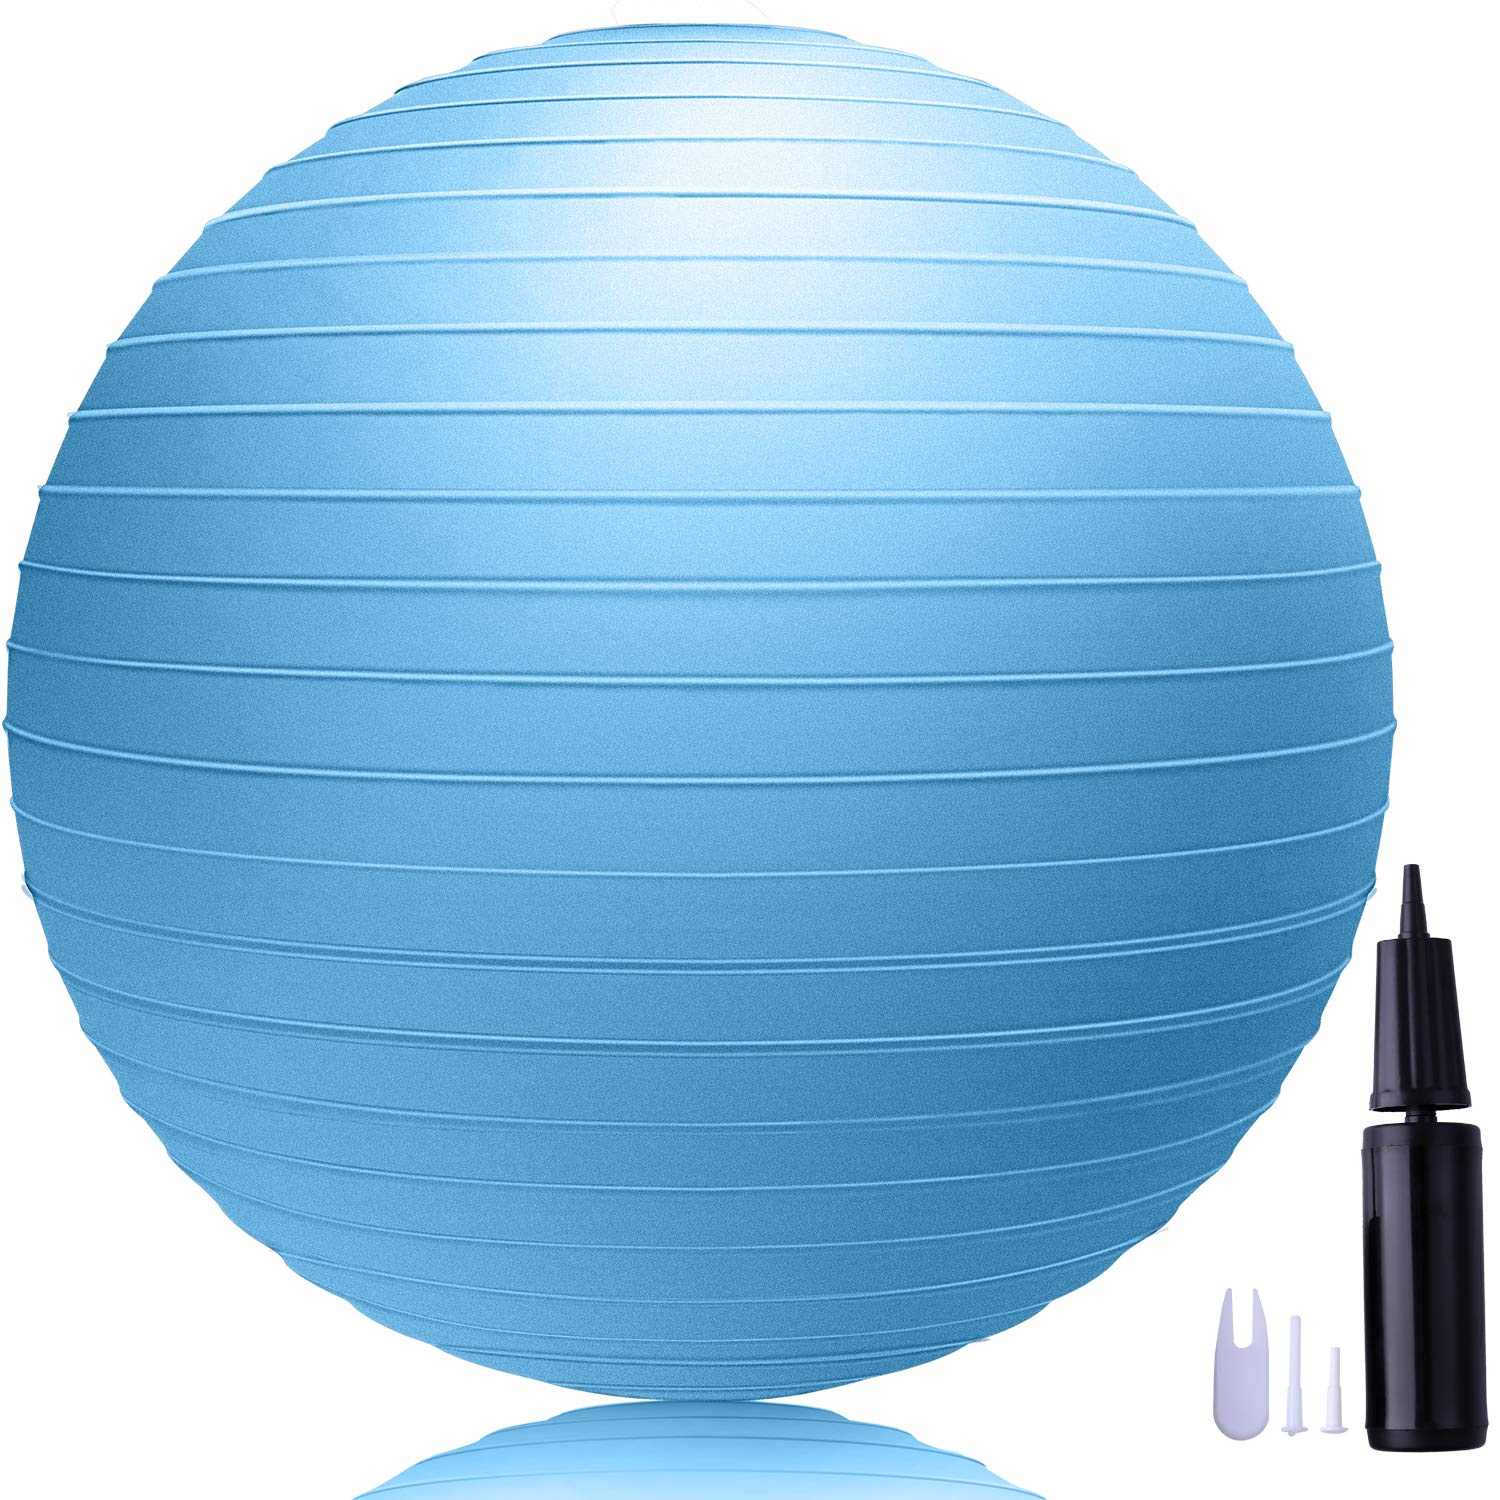 LAKIBOLE 75cm Exercise Ball Anti-Burst Yoga Ball with Quick Pump for Office & Home & Gym (Blue)